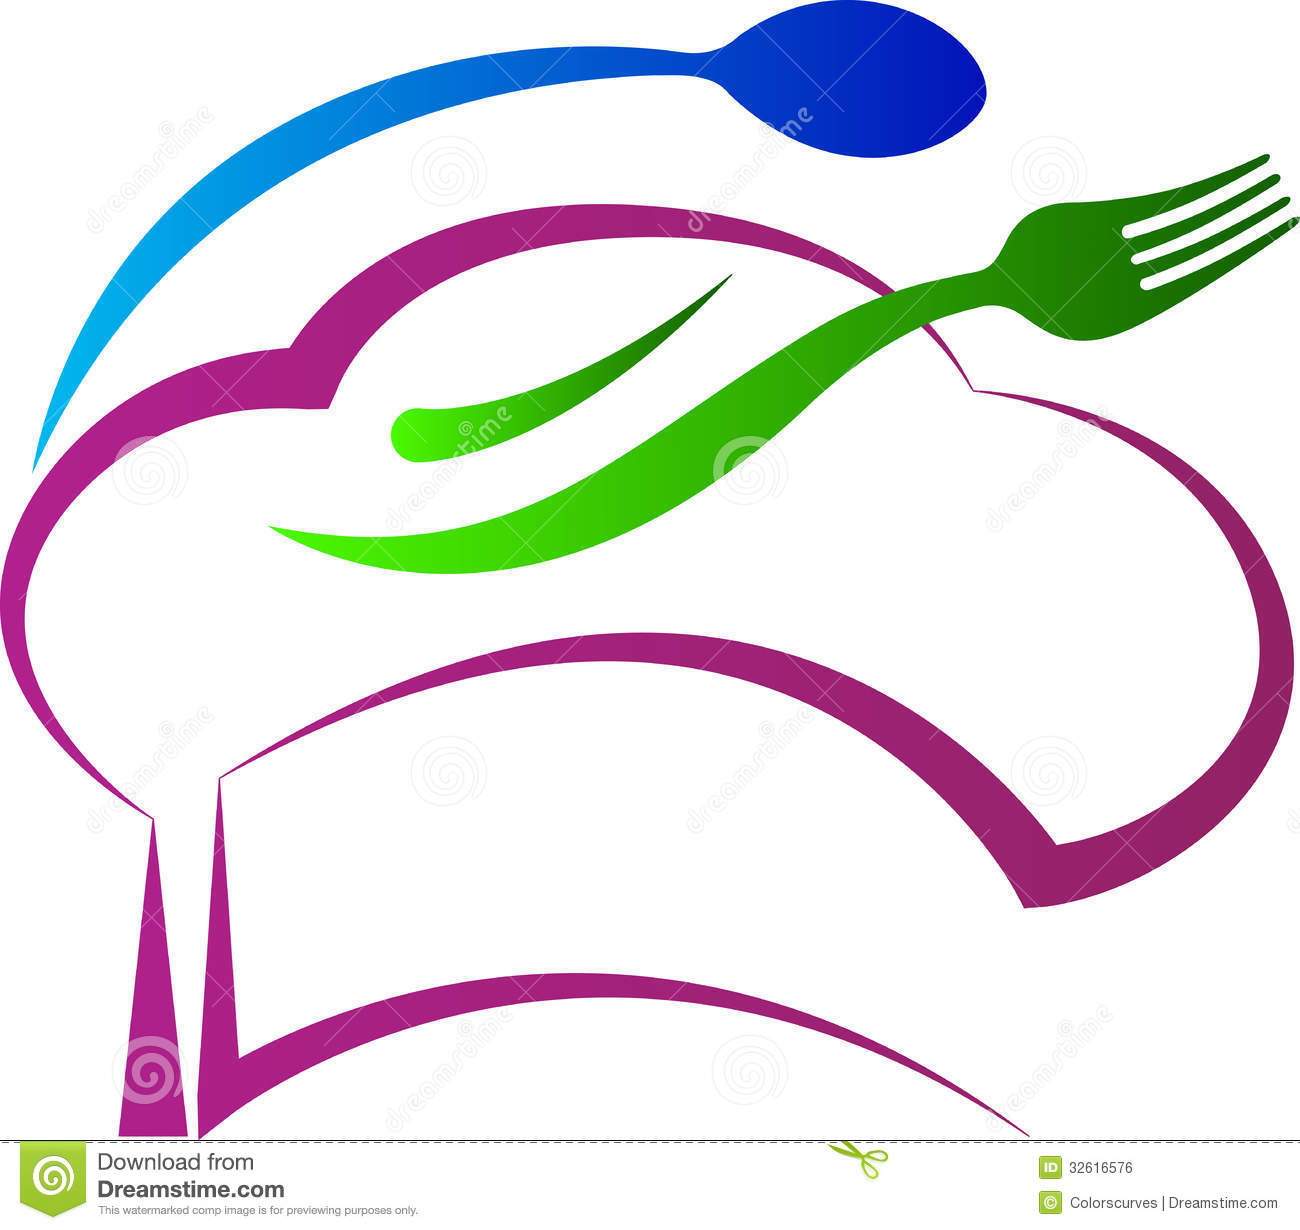 spoon%20and%20fork%20logo